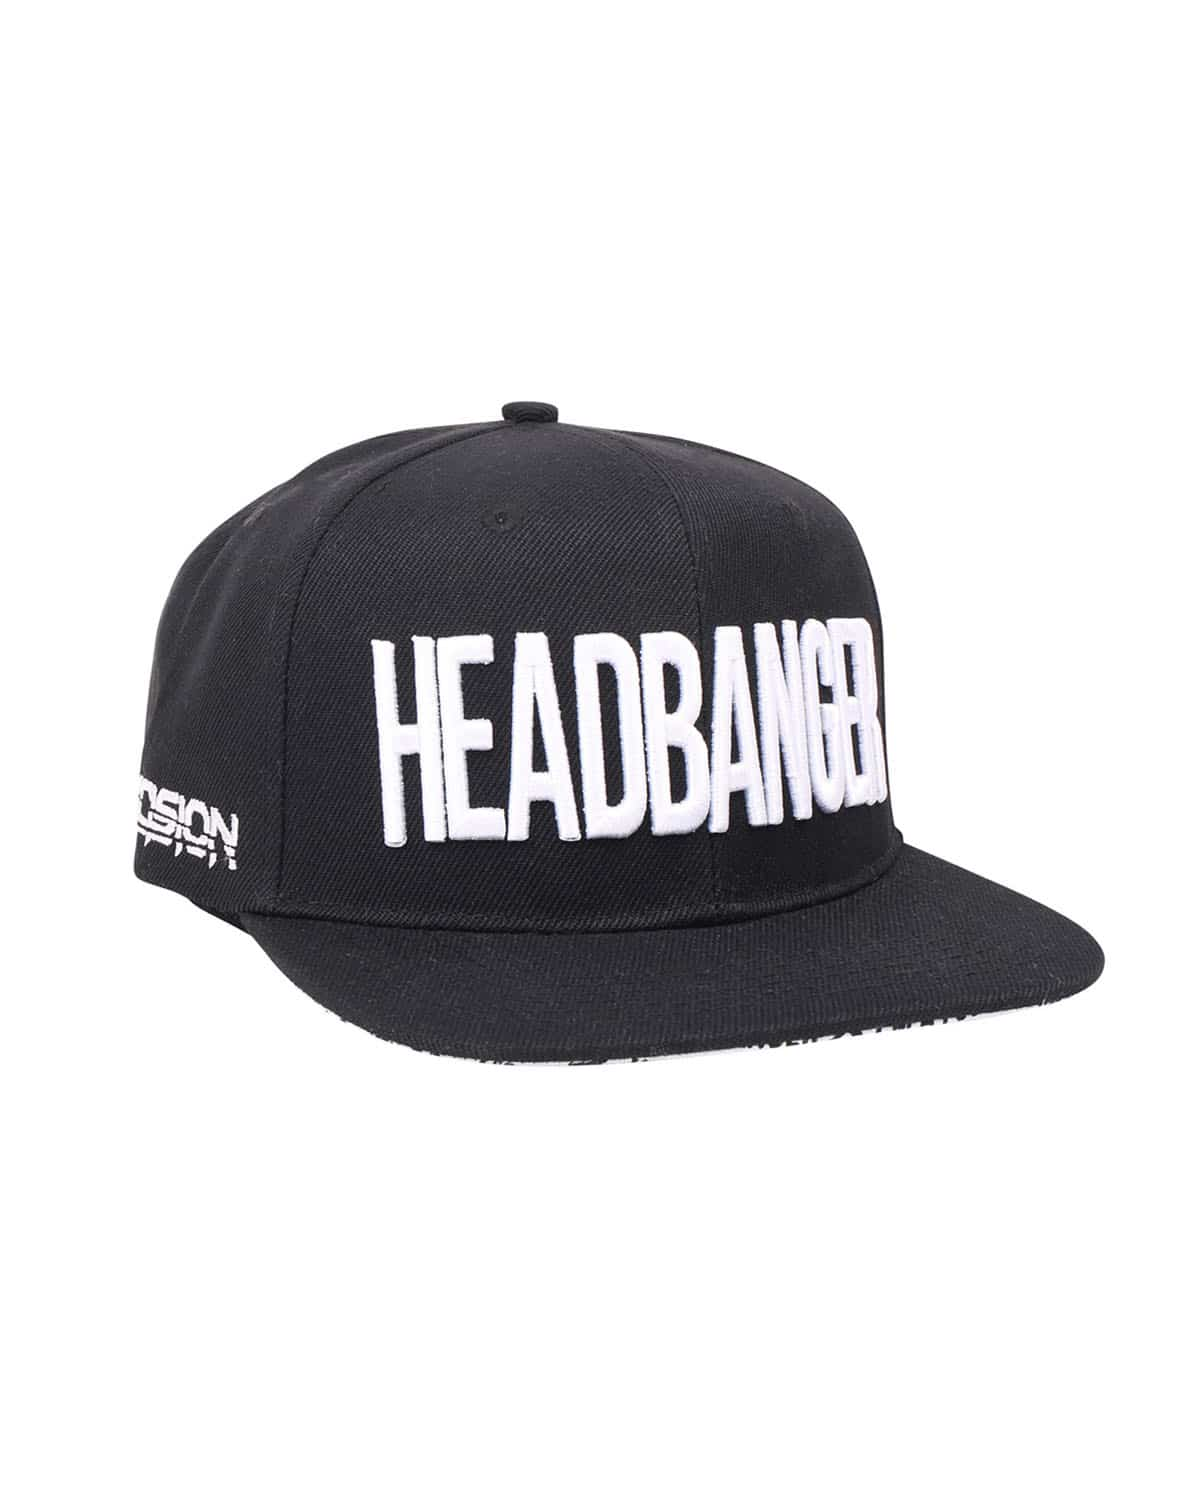 'Headbanger' Snapback - Black/White